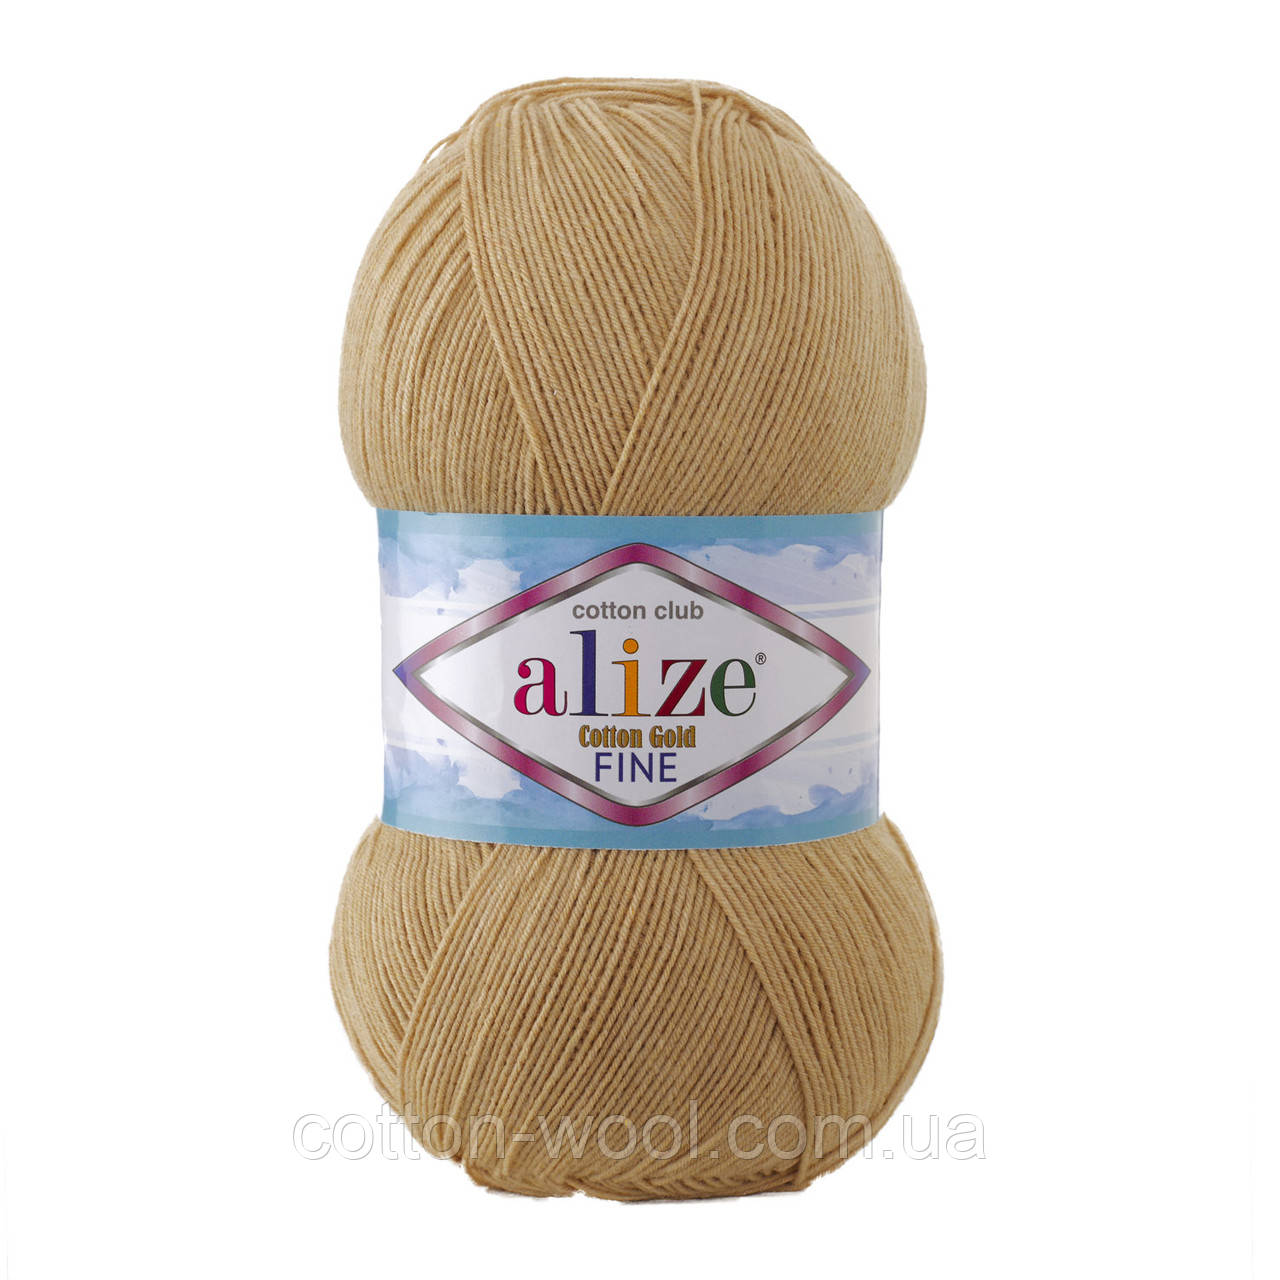 Alize Cotton  Gold Fine (Коттон Голд Файн) 55% - бавовна, 45% - акріл 262